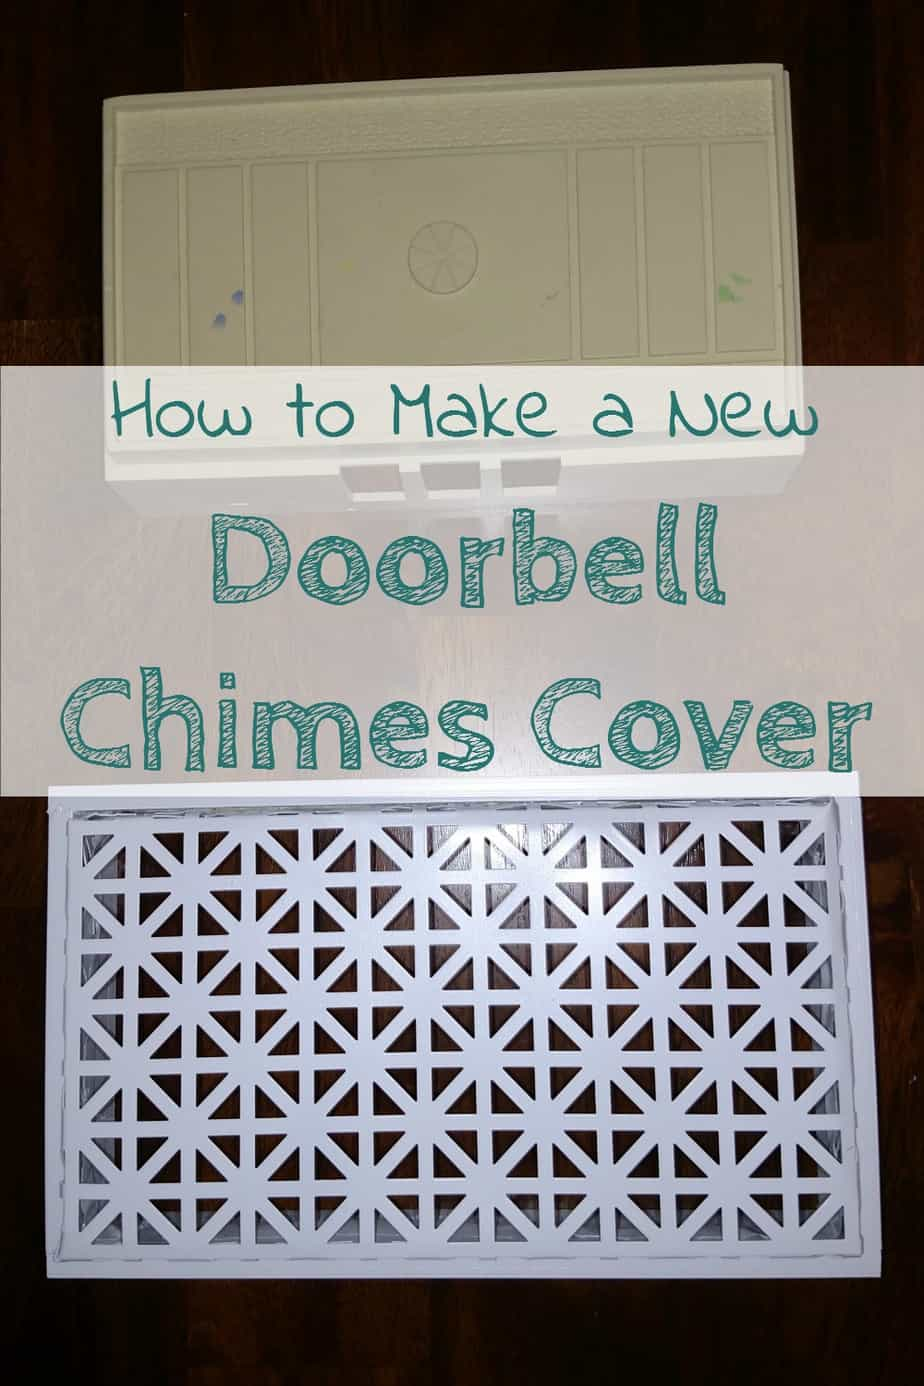 Make a new chimes cover for your old wired doorbell chimes and give it an updated look